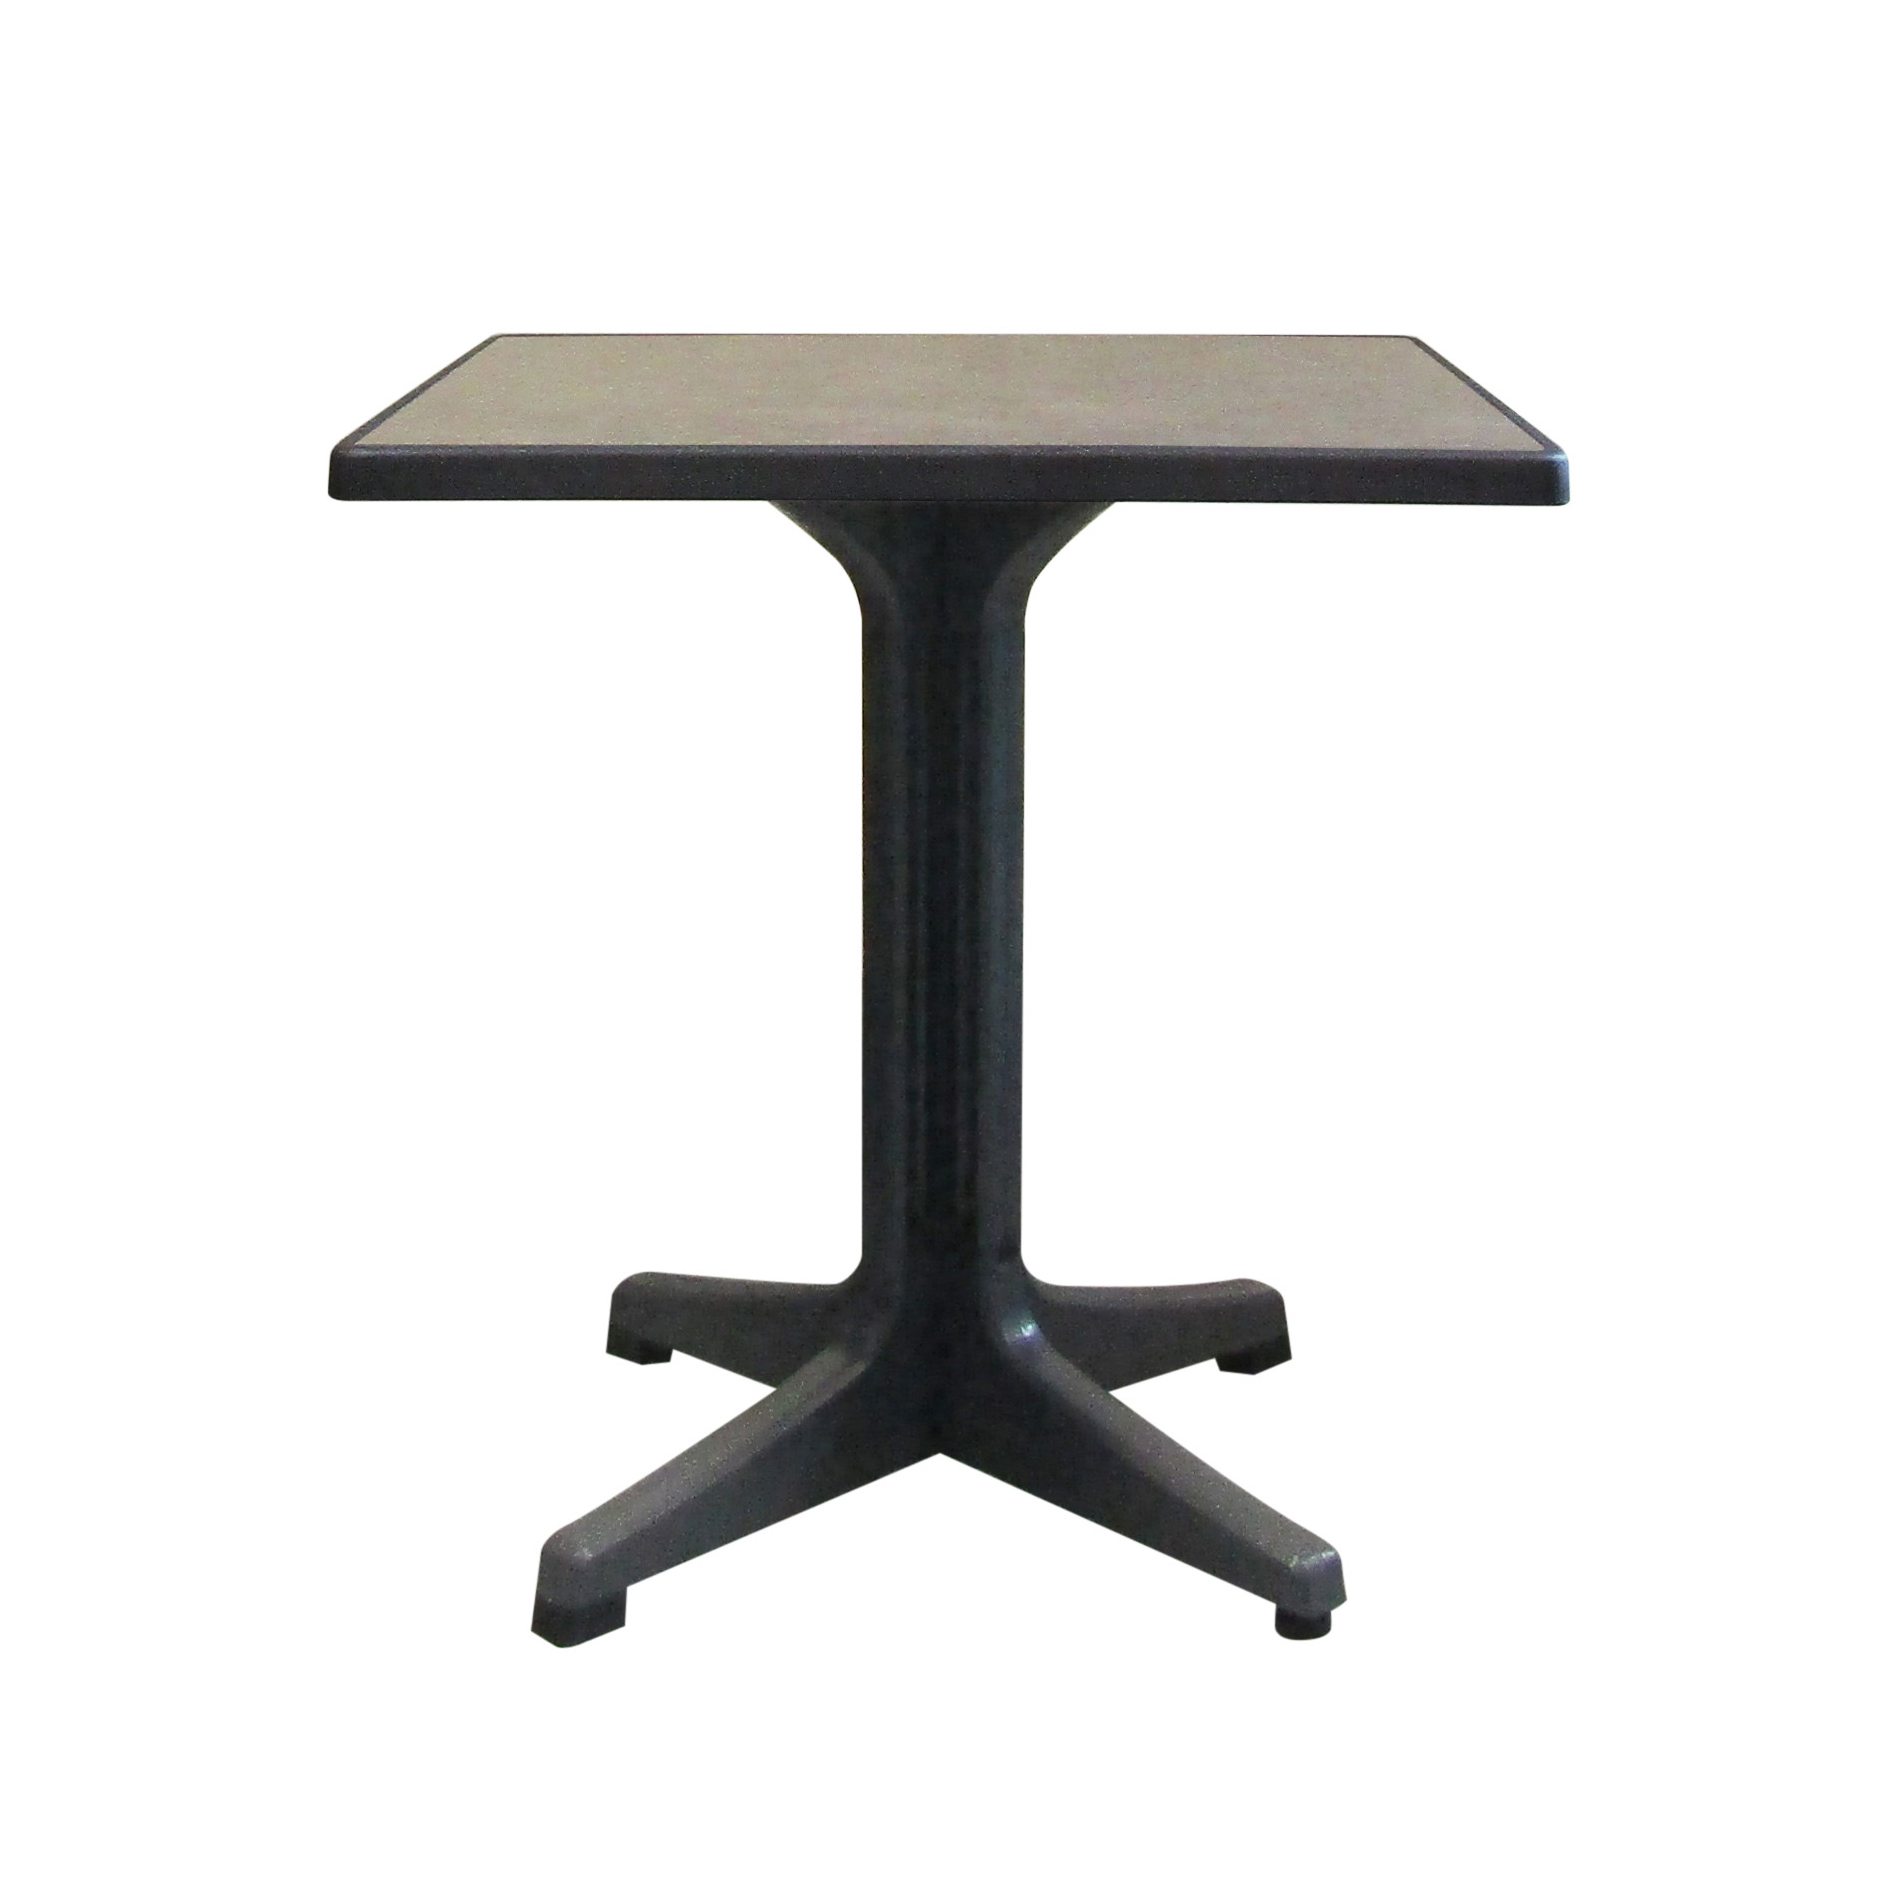 Grosfillex US283746 table, outdoor